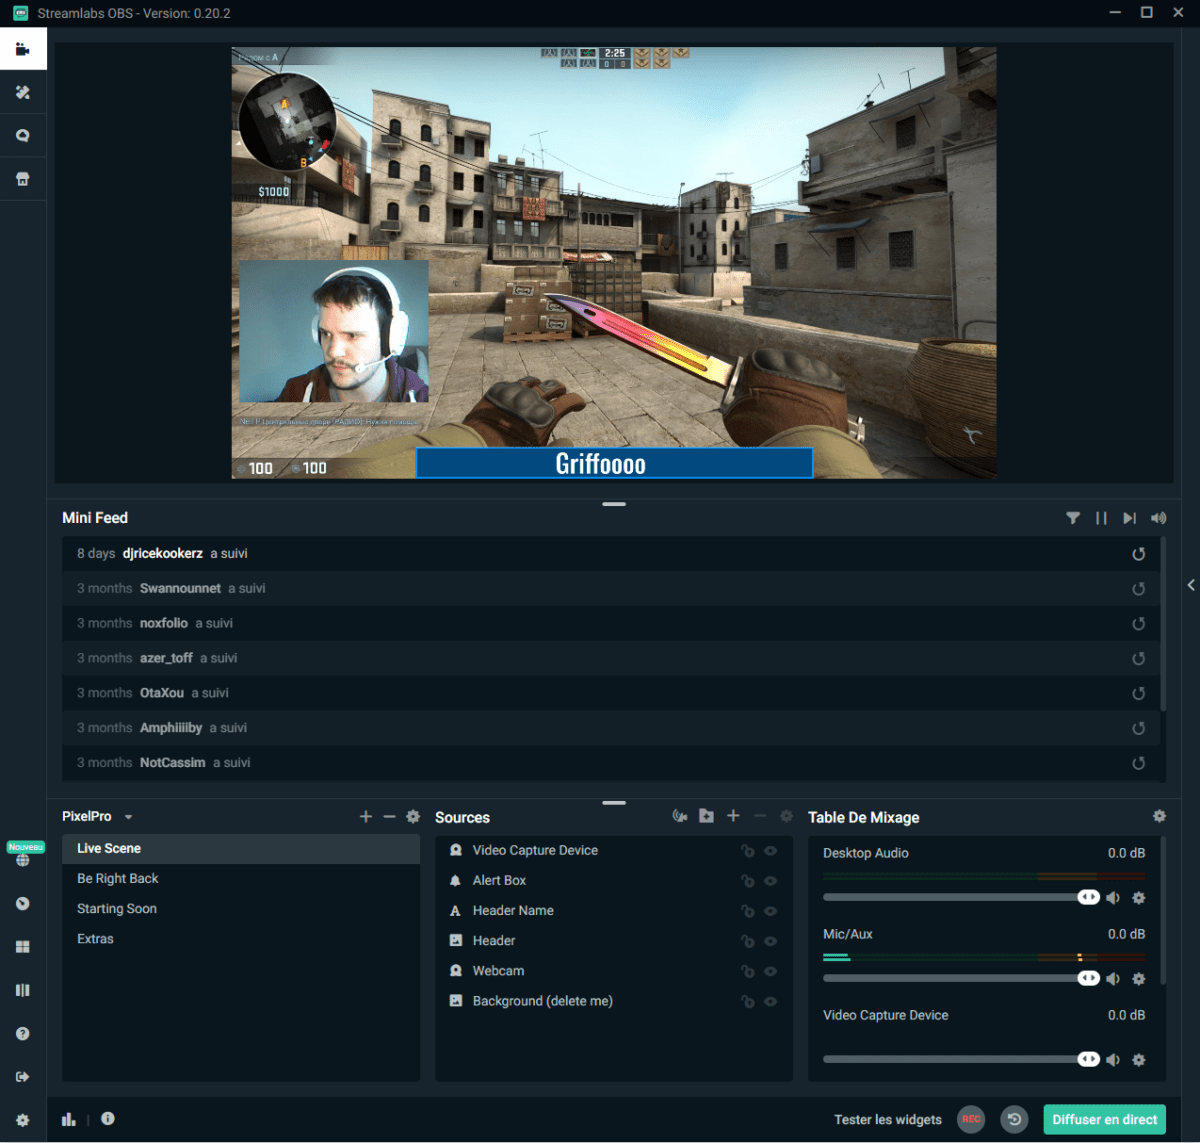 L'interface de Streamlabs sur PC